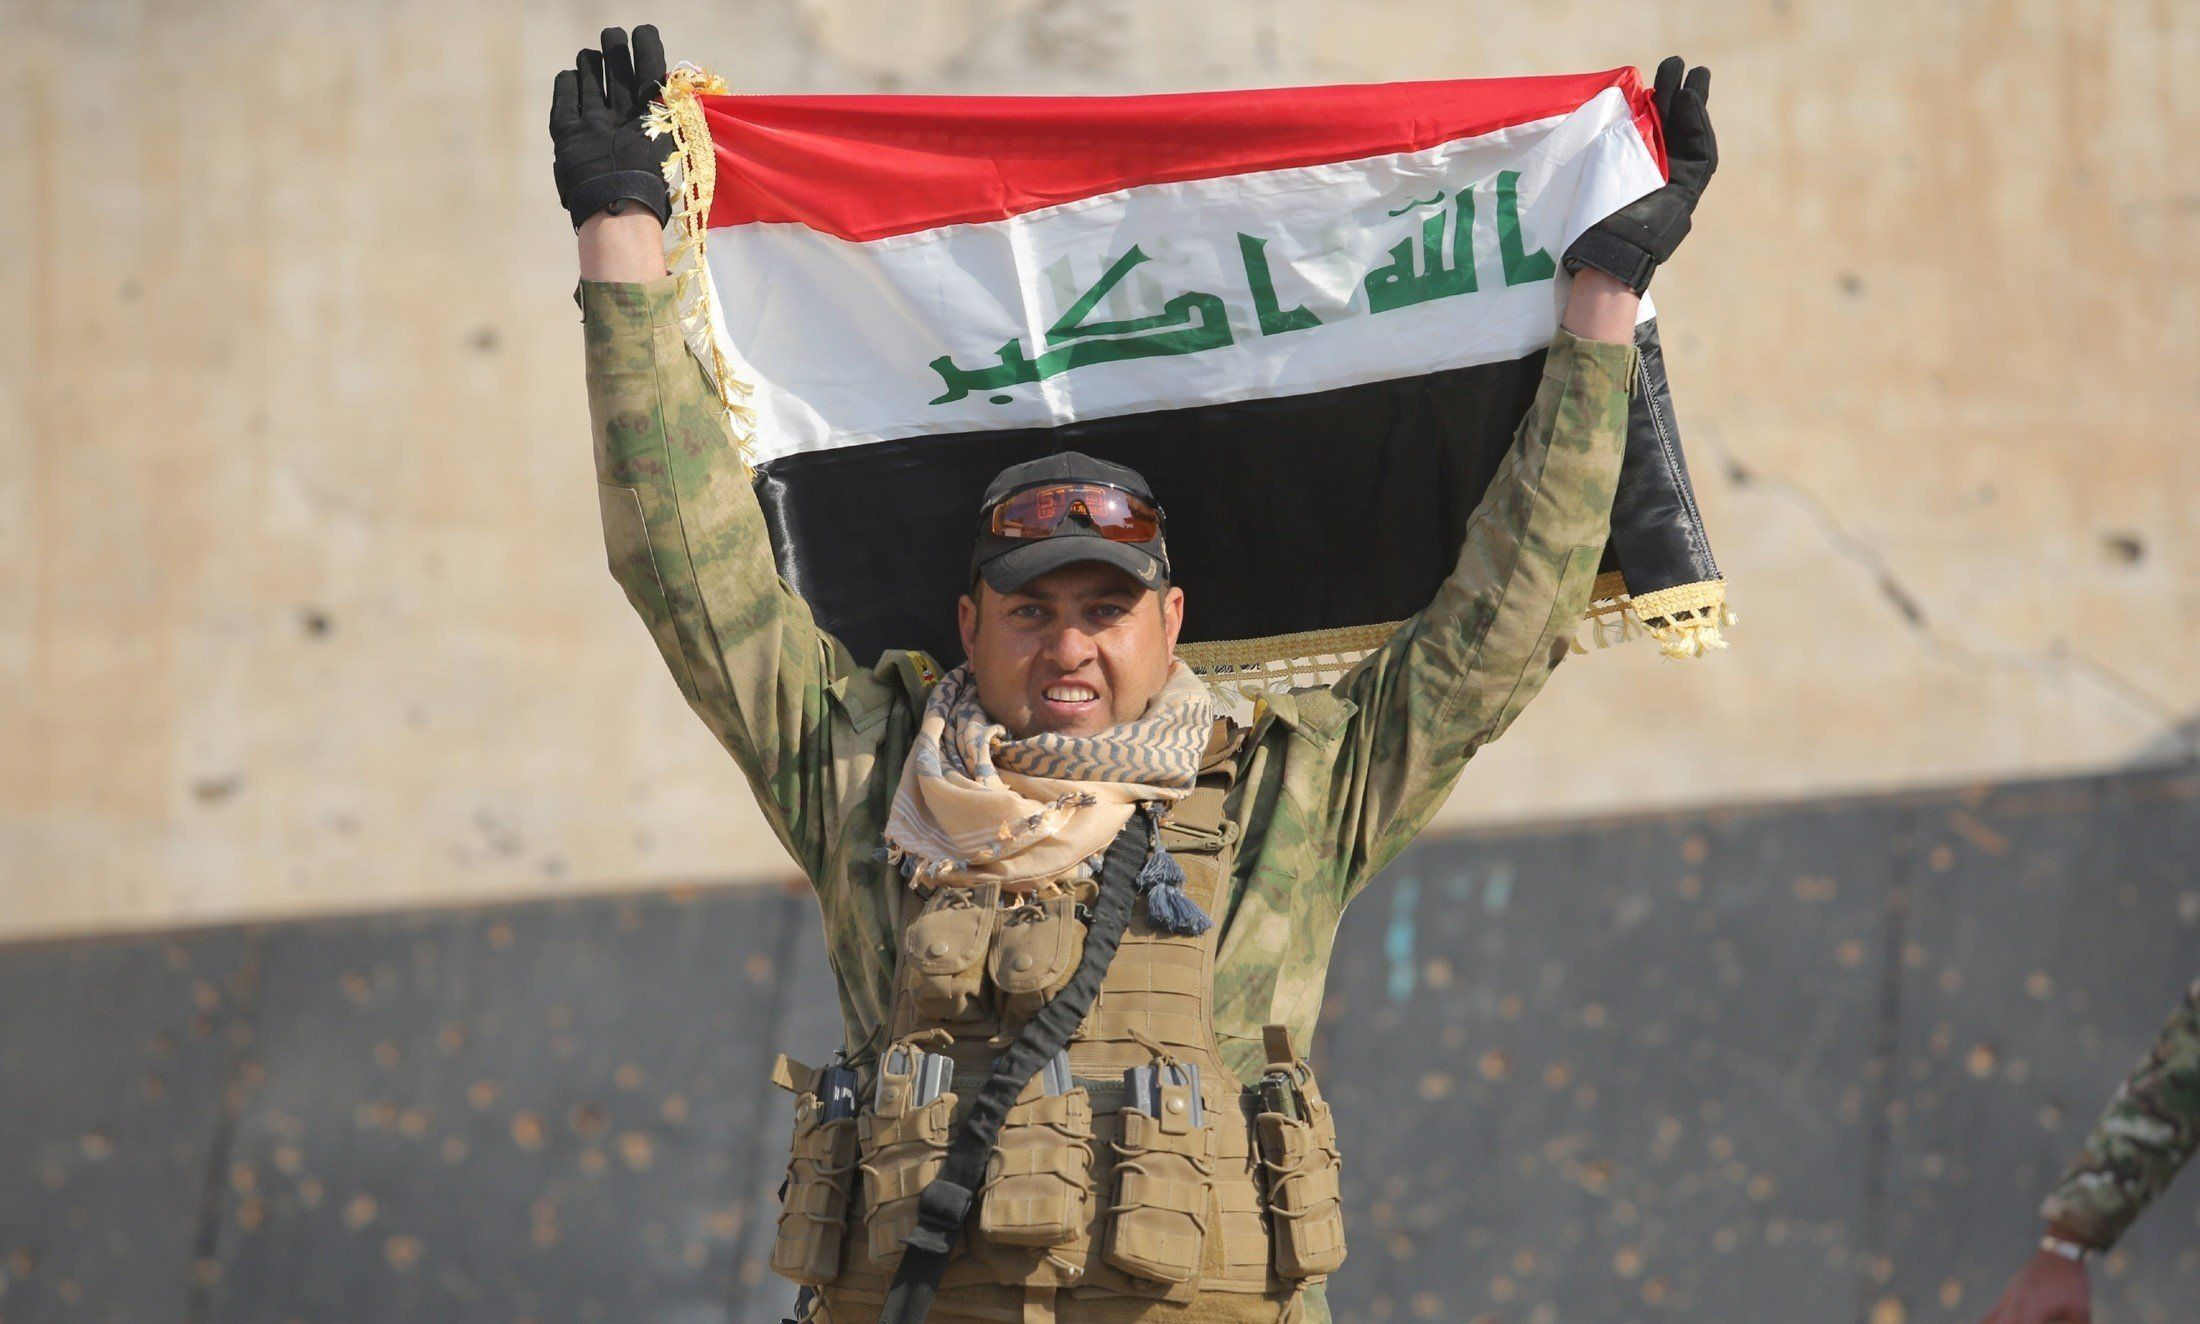 RAMADI, IRAQ - DECEMBER 28: Member of the Iraqi security forces carries a flag of Iraq after retaking Ramadi city from Daesh, in Ramadi, Iraq on December 28, 2015. (Photo by Ali Mohammed/Anadolu Agency/Getty Images)